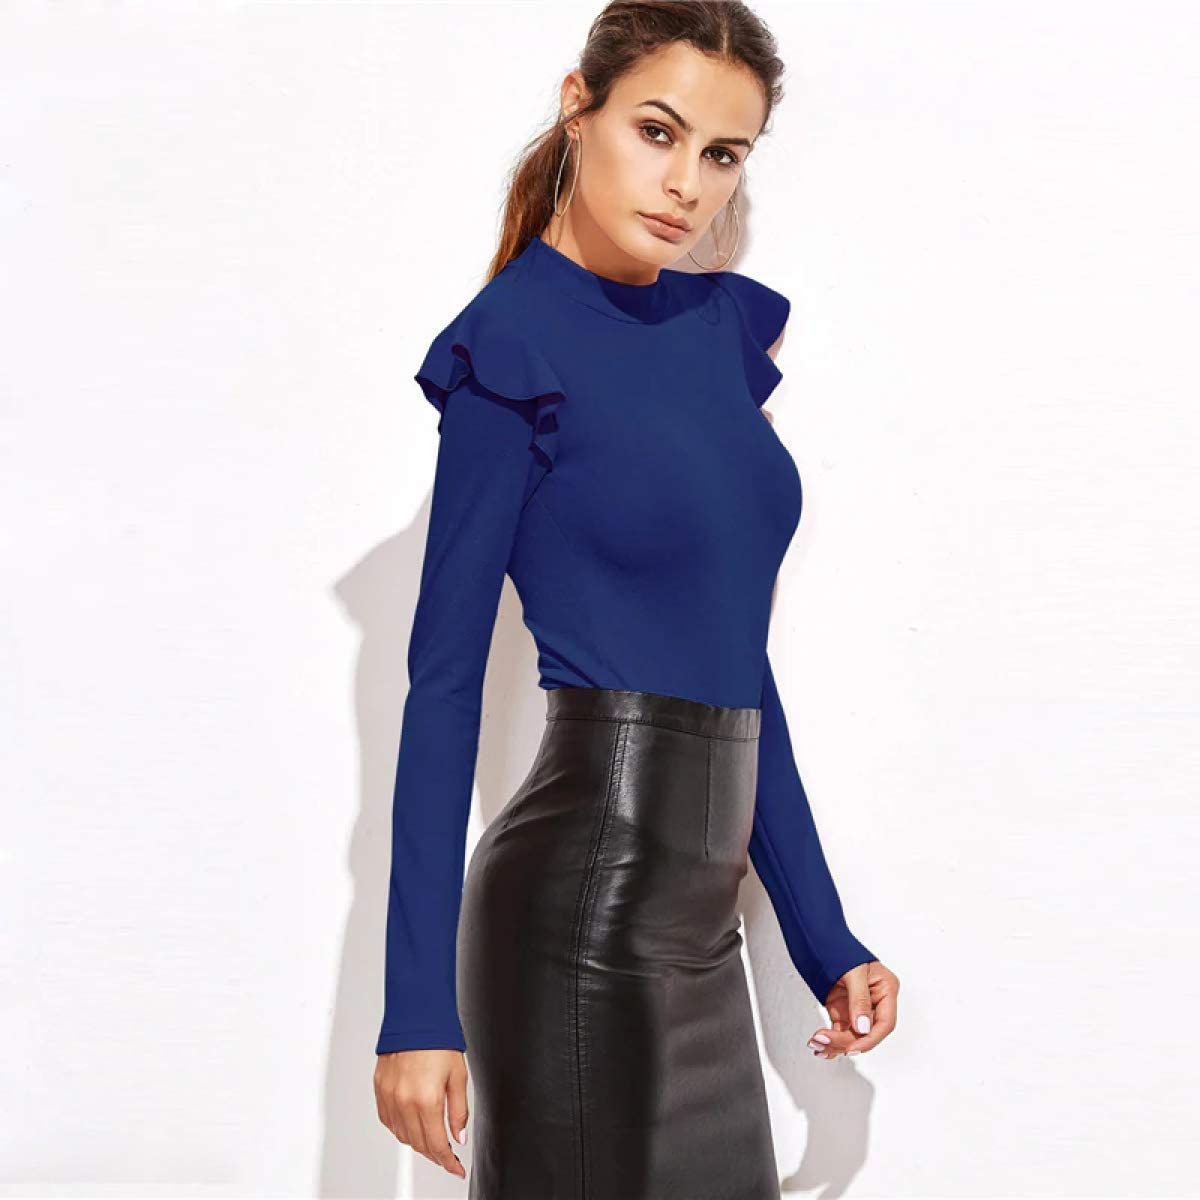 MIKI SHOP Blue Mock Neck Frill Textured Bodysuit Women Clothes Long Sleeve